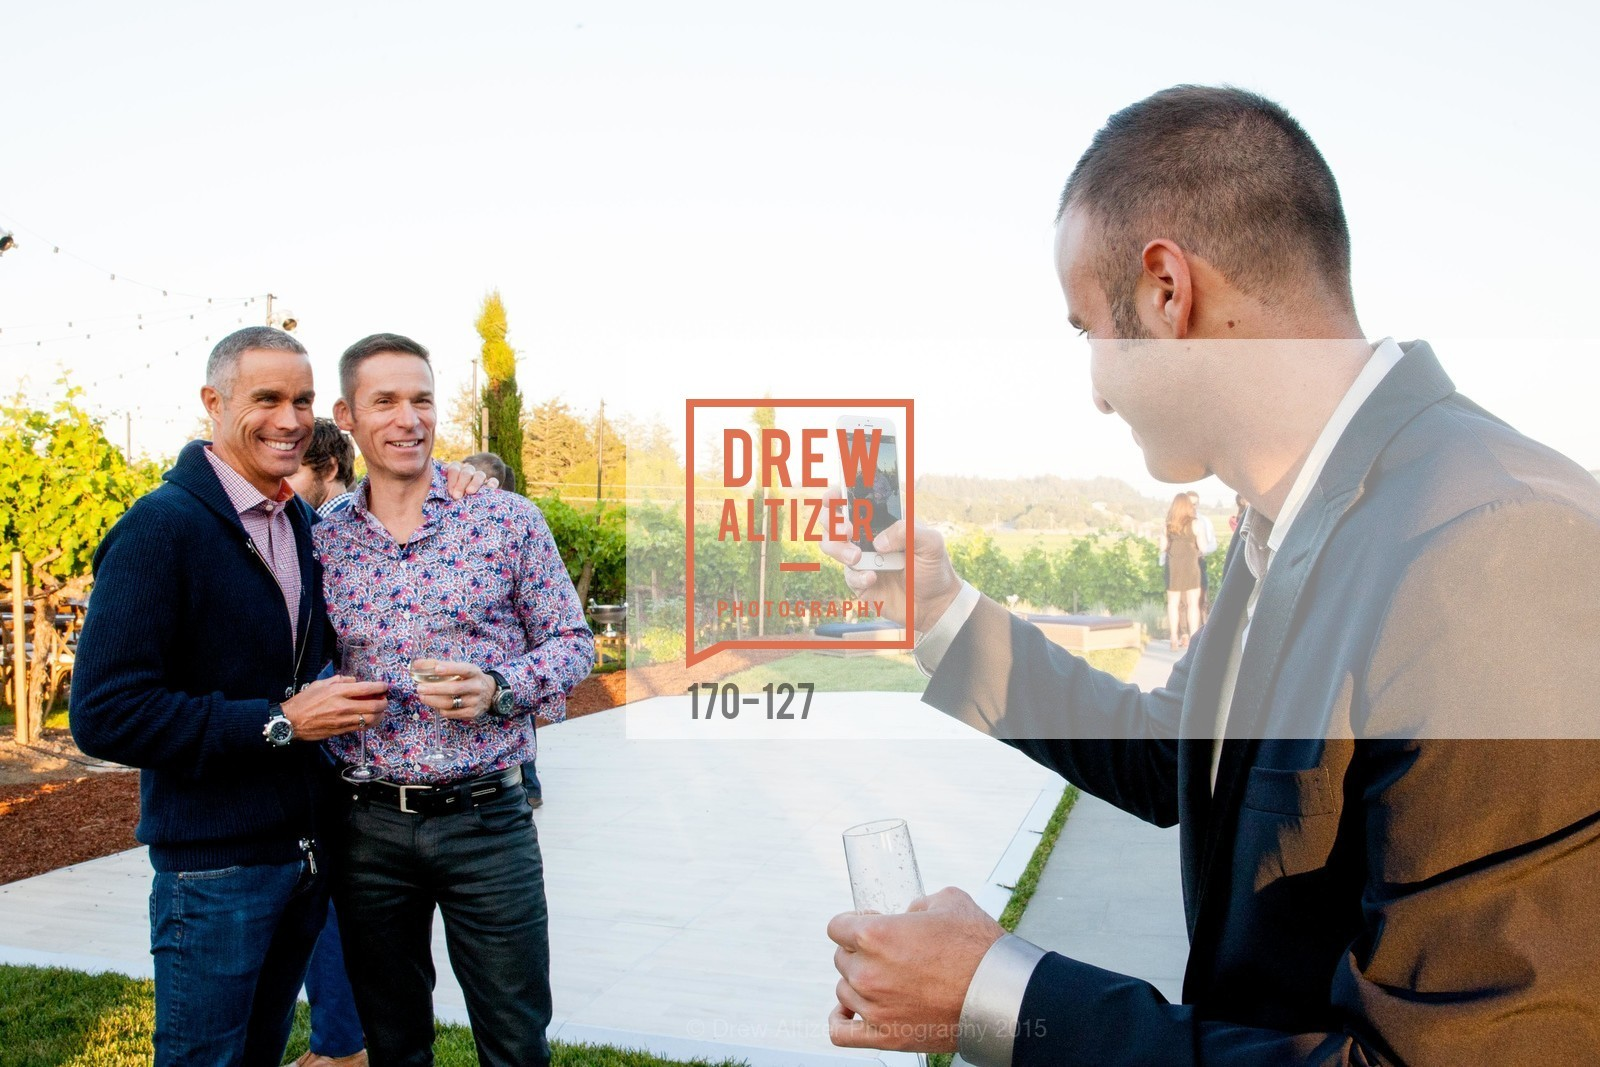 Dan Veach, Andres Wydler, Ari Kofayan, An Evening in the Vineyard hosted by JACK CALHOUN & TRENT NORRIS, Jack Calhoun & Trent Norris Vineyard. 3393 Dry Creek Road, Healdsburg CA 95448, May 22nd, 2015,Drew Altizer, Drew Altizer Photography, full-service agency, private events, San Francisco photographer, photographer california